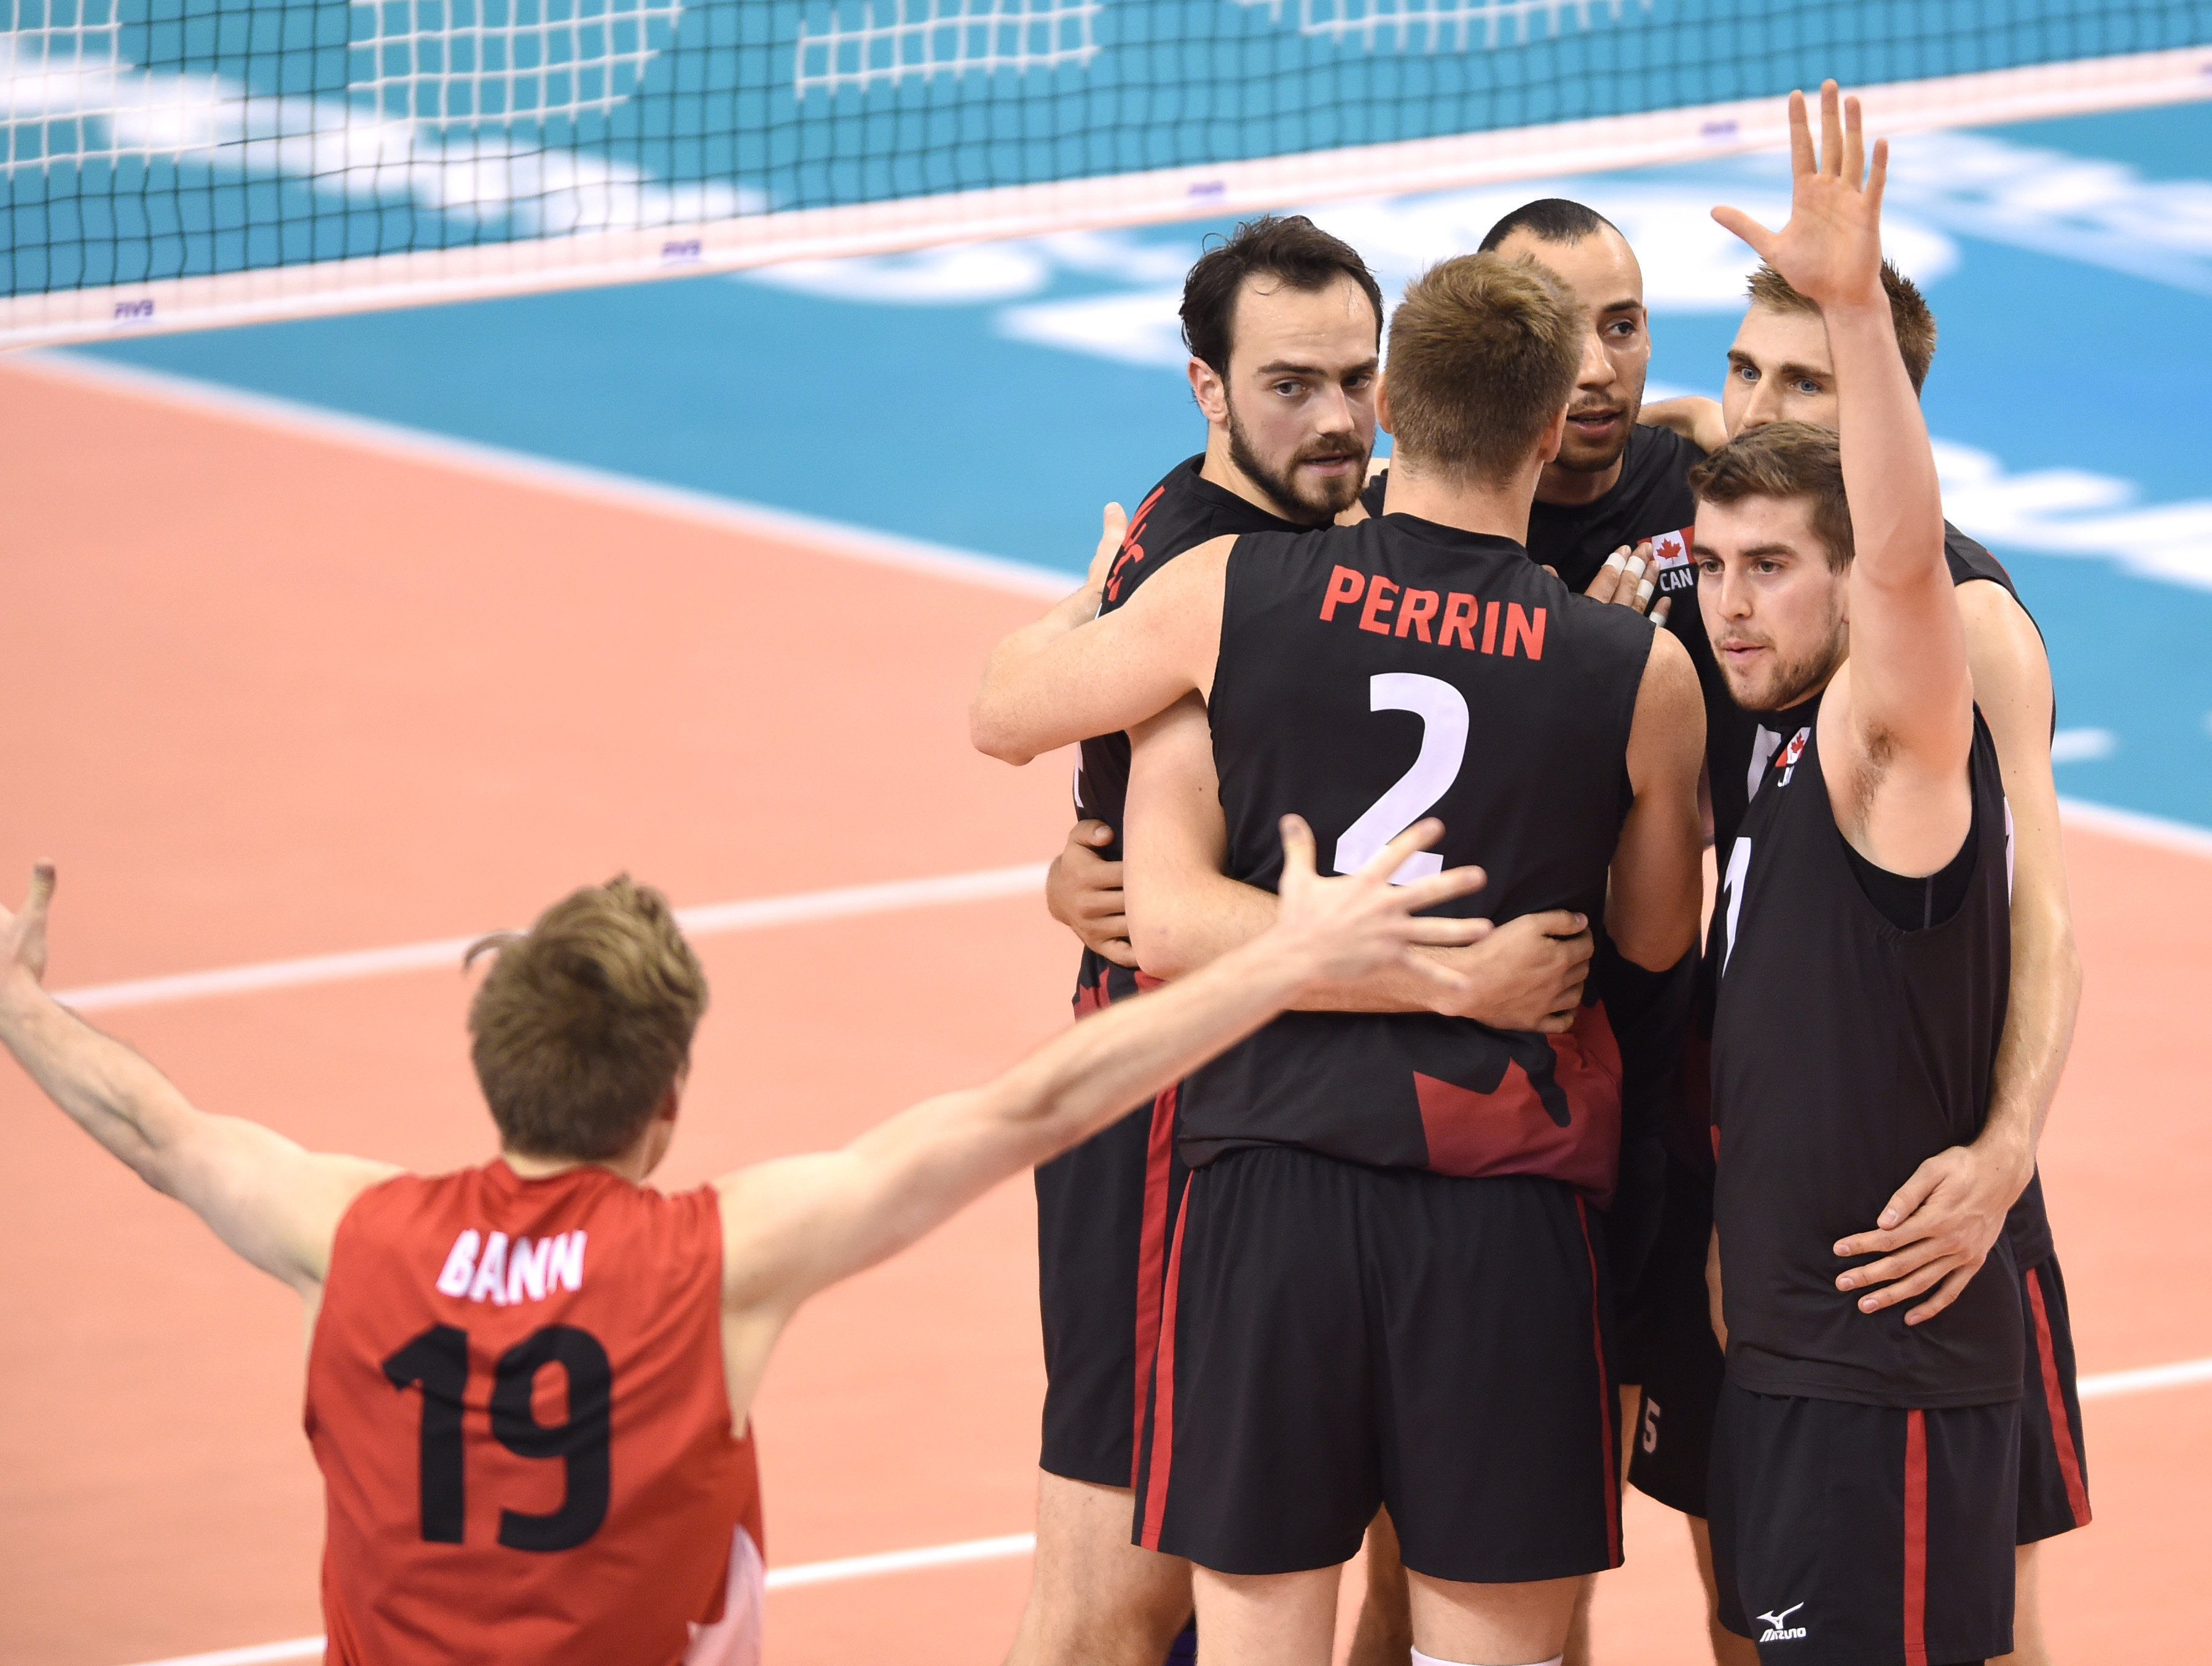 Canada players celebrating during the match against Turkey